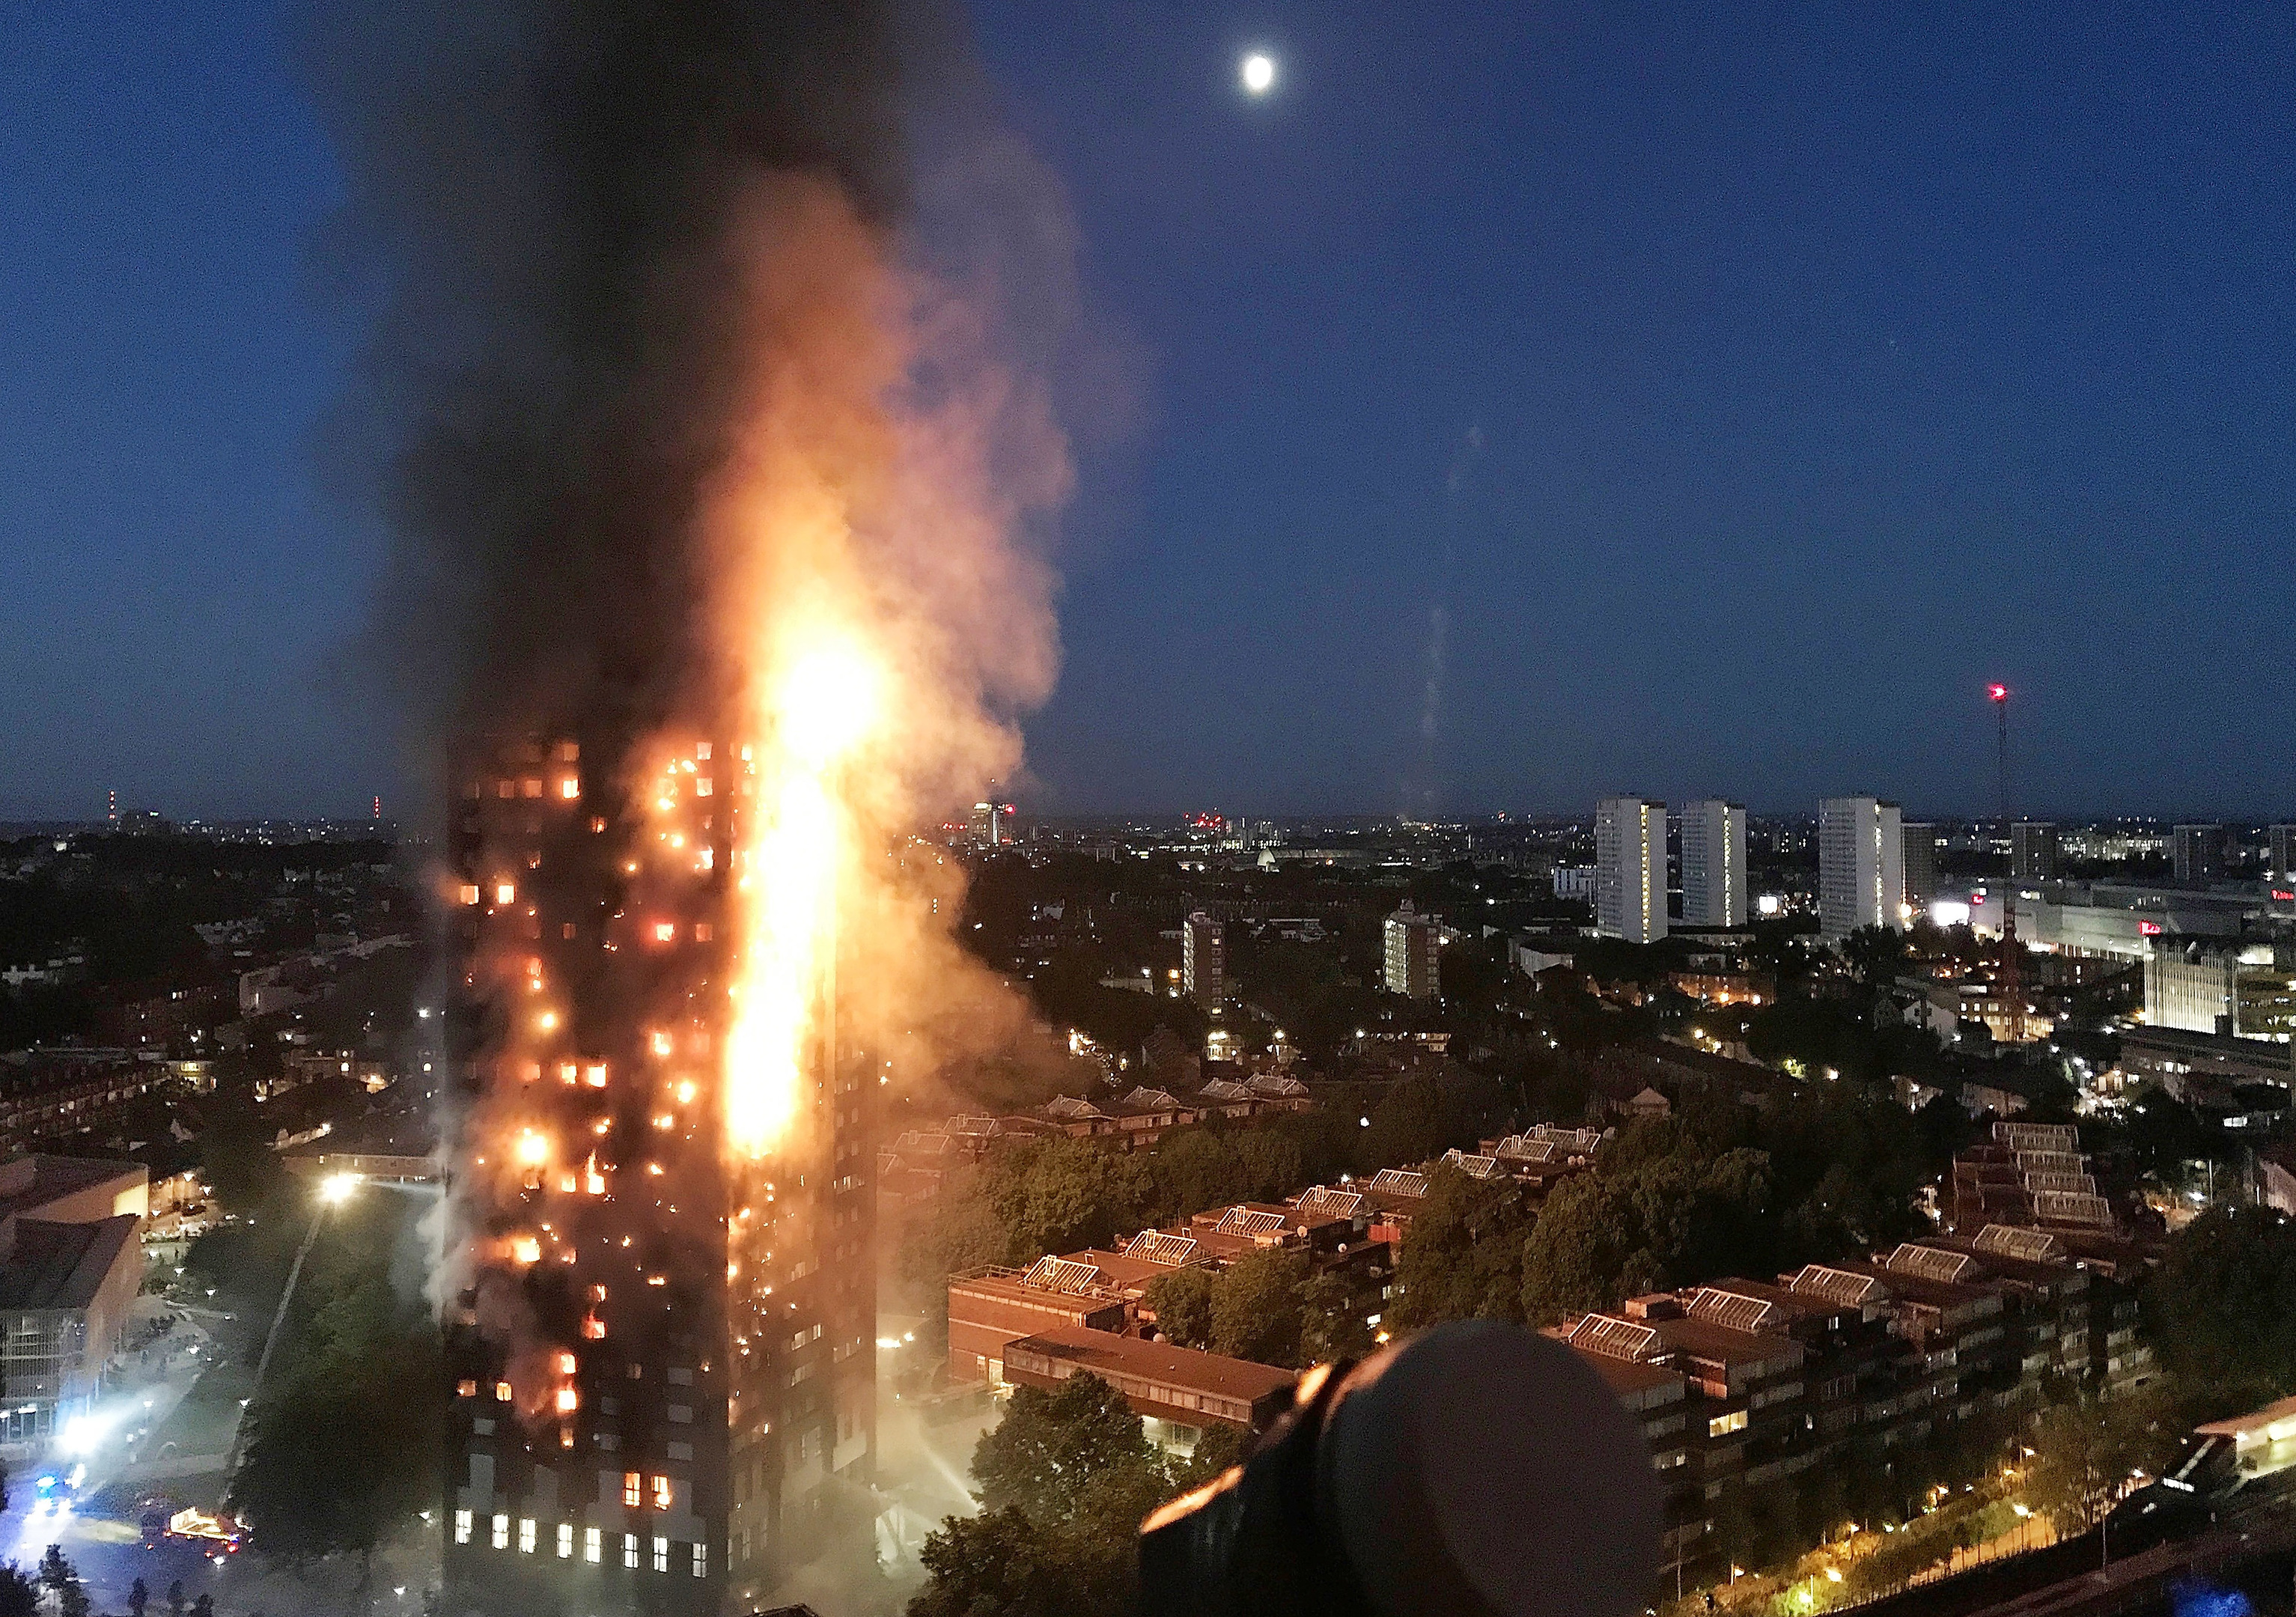 In this image taken by eyewitness Gurbuz Binici, a huge fire engulfs the 24 story Grenfell Tower in Latimer Road, West London.